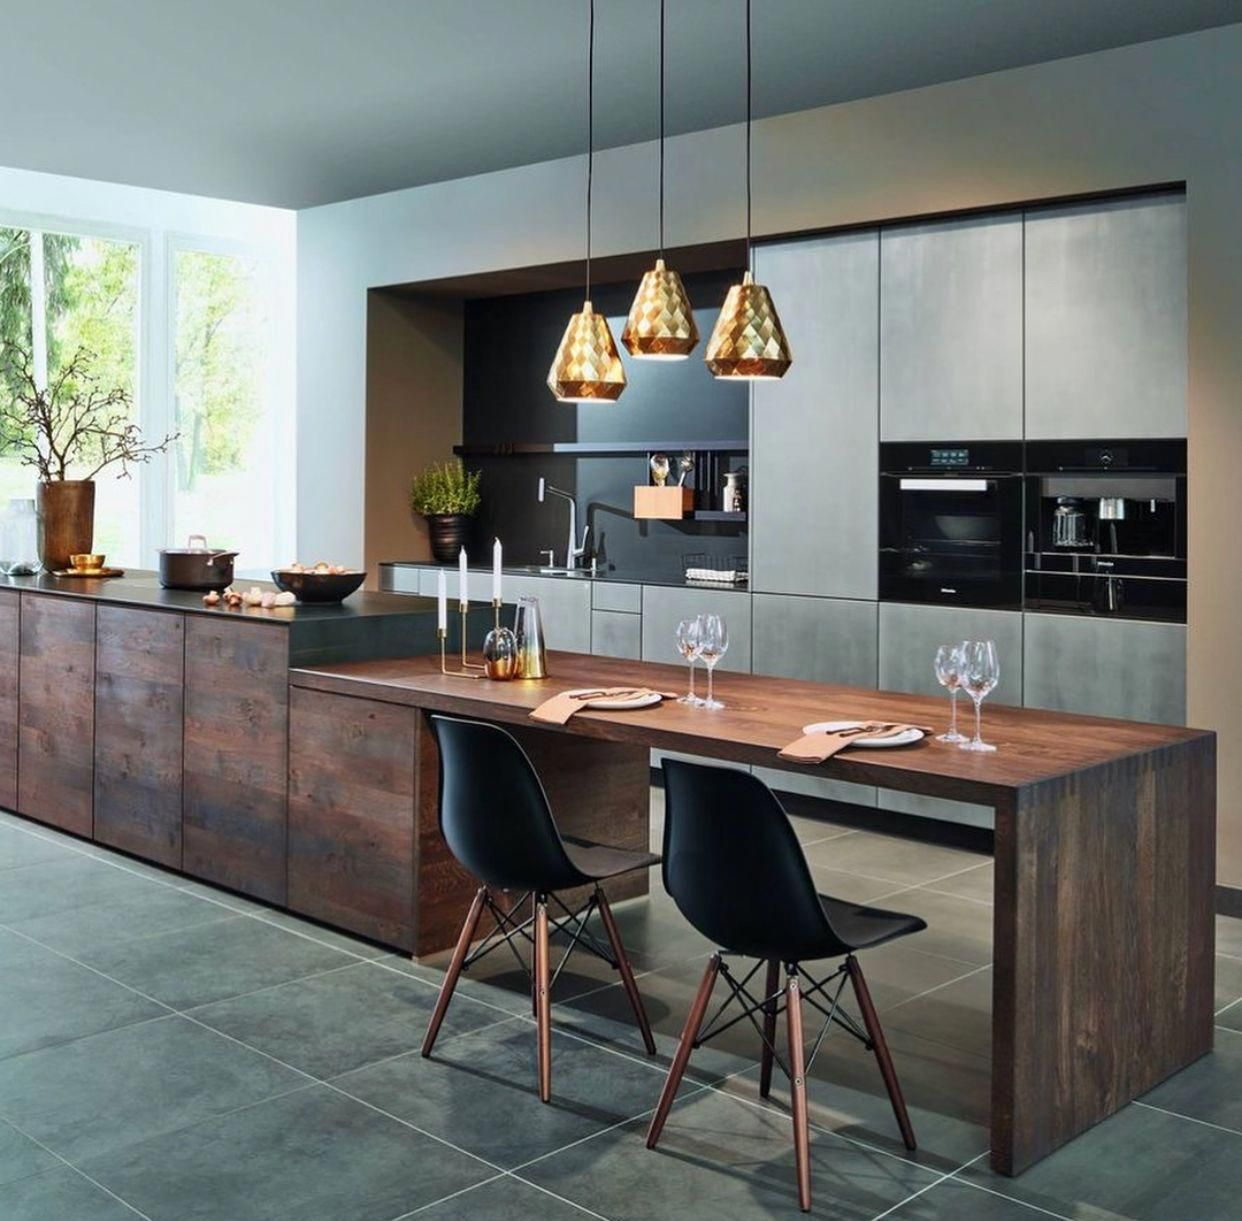 Learn Why A Stylish Kitchen Can Kickstart A Healthier Lifestyle